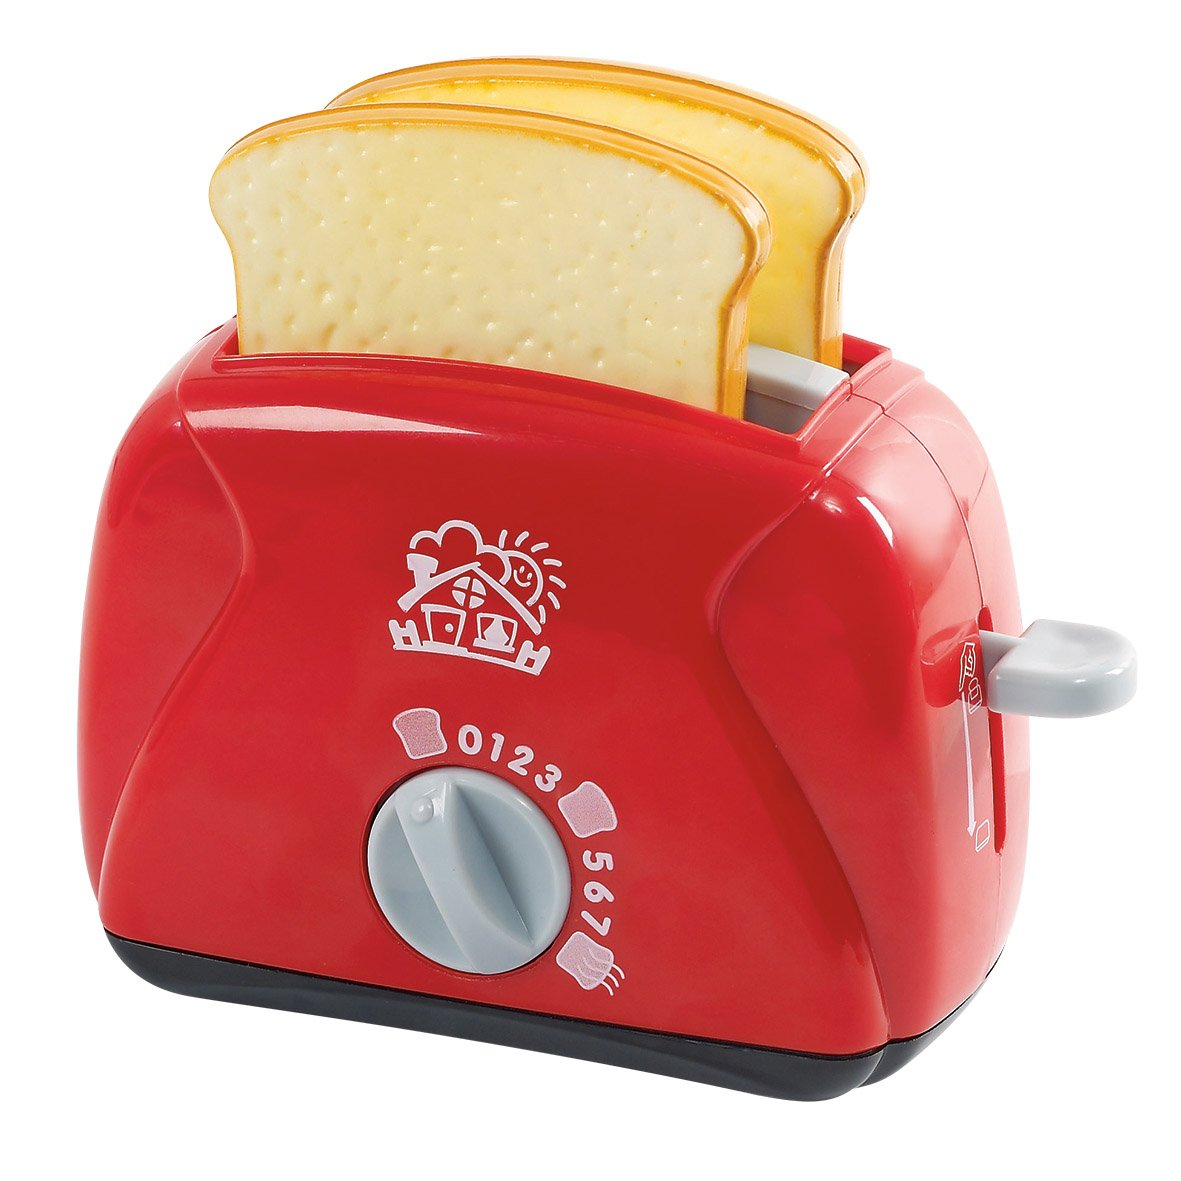 PlayGo Lightweight Play Kitchen Bread Slices Toaster Toy Pretend Play Pop-Up for Kids Age 3 Years & Up by PlayGo